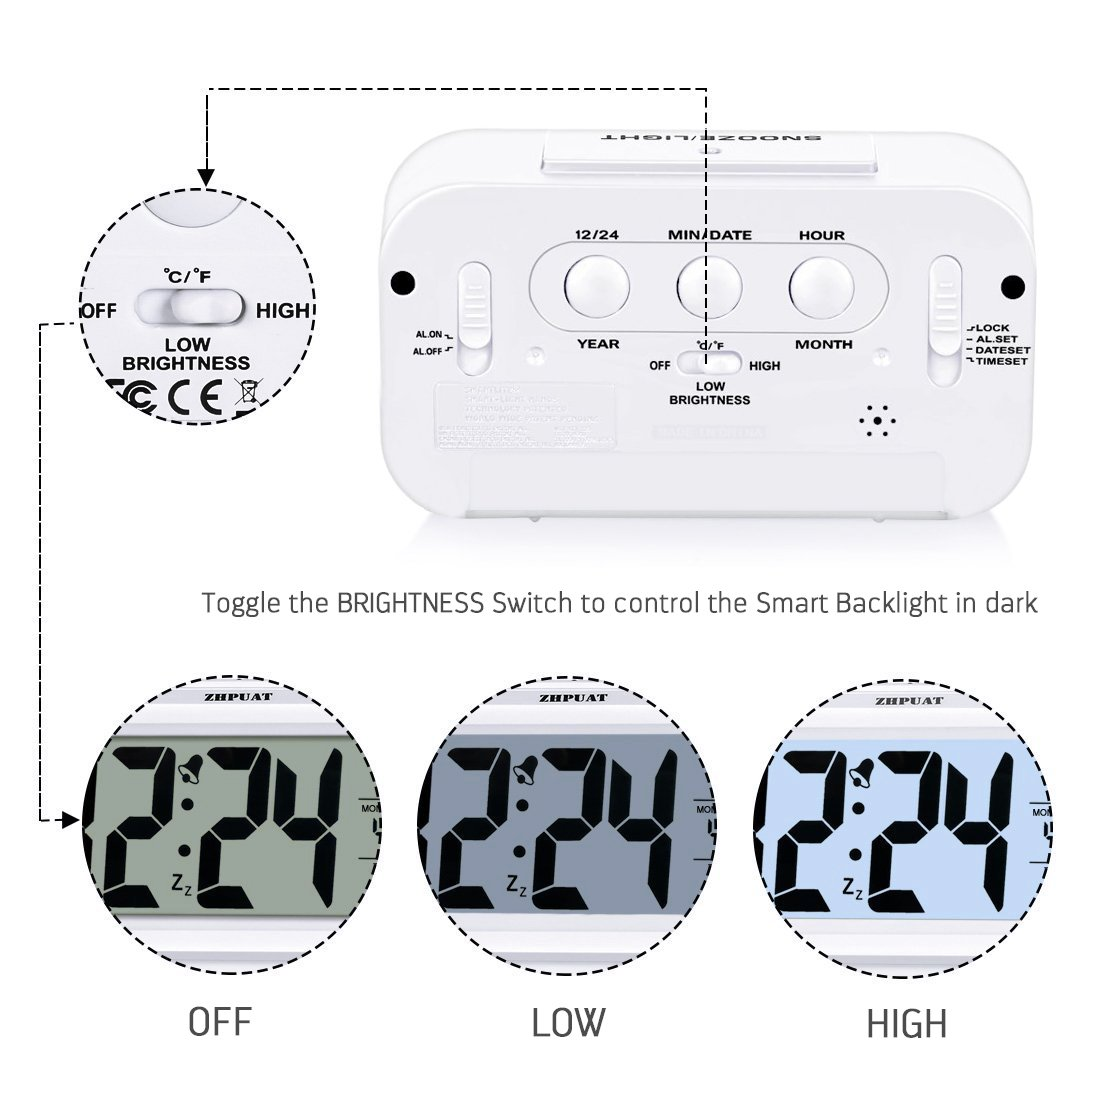 Zhpuat 46 Display Digital Alarm Clock With Smart 12 Way Marine Non Illuminated Switch Circuit Breaker Panel Amazonco Electronics